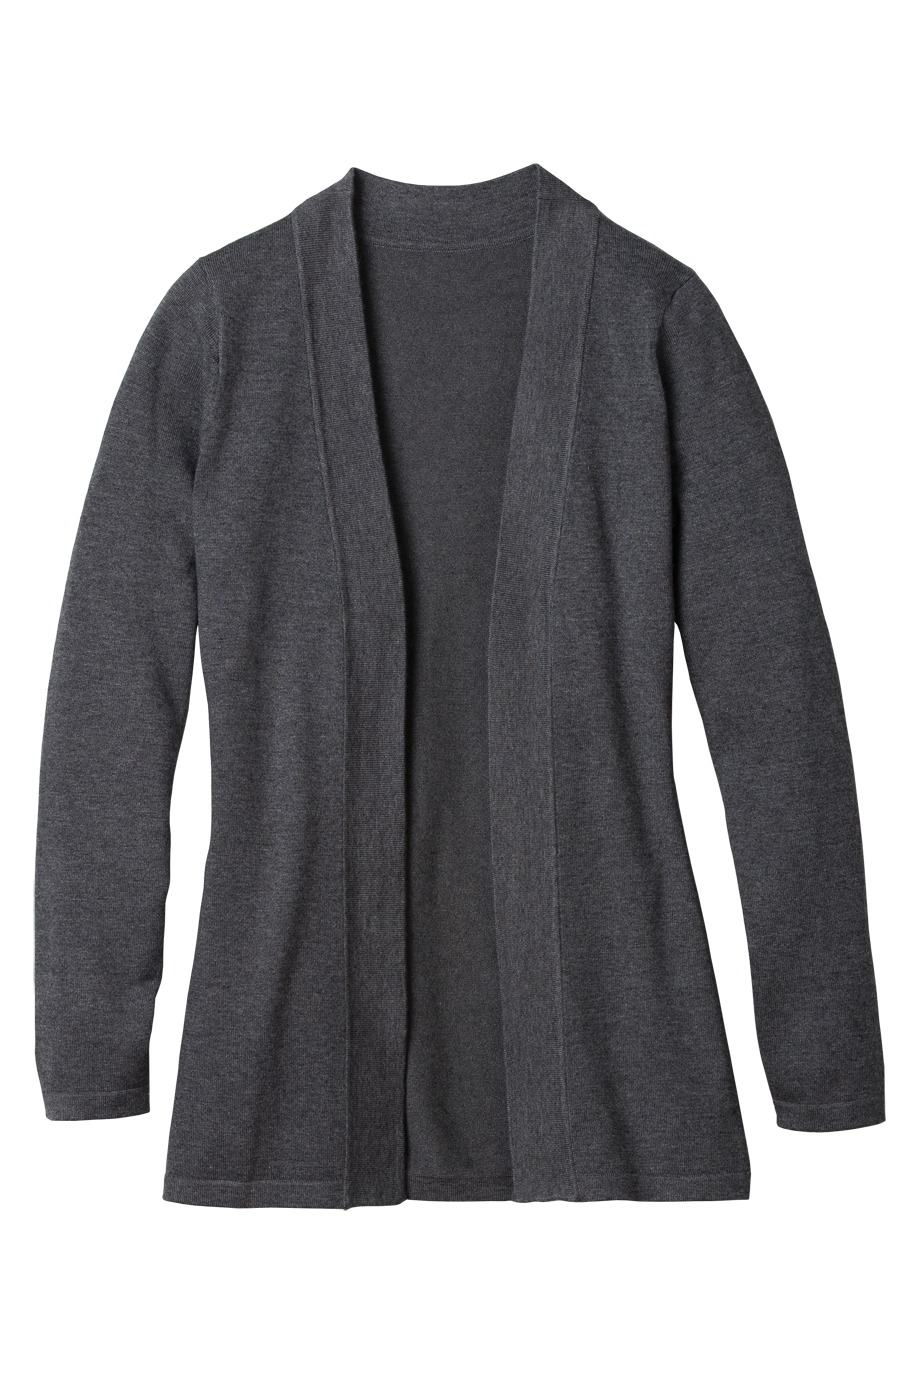 Edwards Garment 7056 - Women's Open Front Cardigan